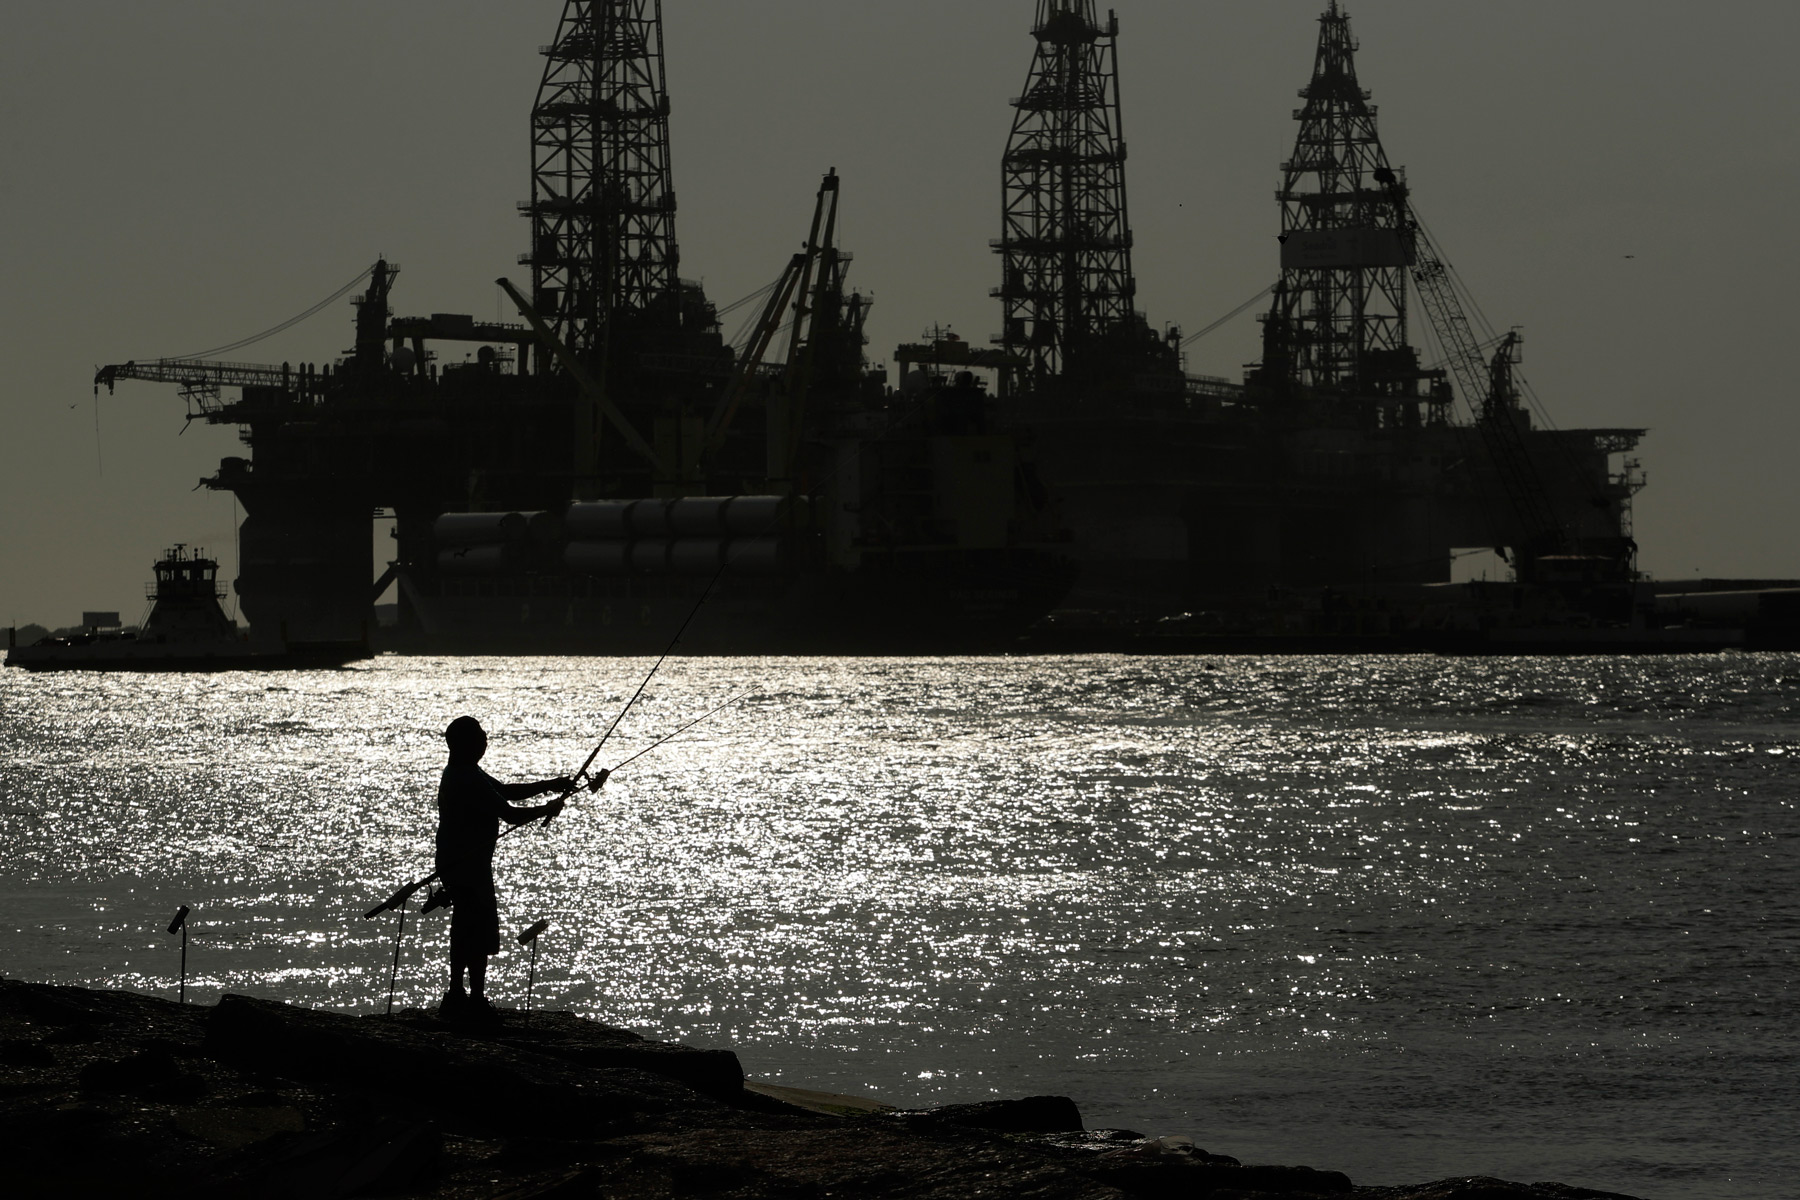 A man wear a face mark as he fishes near docked oil drilling platforms, Friday, May 8, 2020, in Port Aransas, Texas. Texas' stay-at-home orders due to the COVID-19 pandemic have expired and Texas Gov. Greg Abbott has eased restrictions on many businesses, churches, state parks and beaches. (AP Photo/Eric Gay)